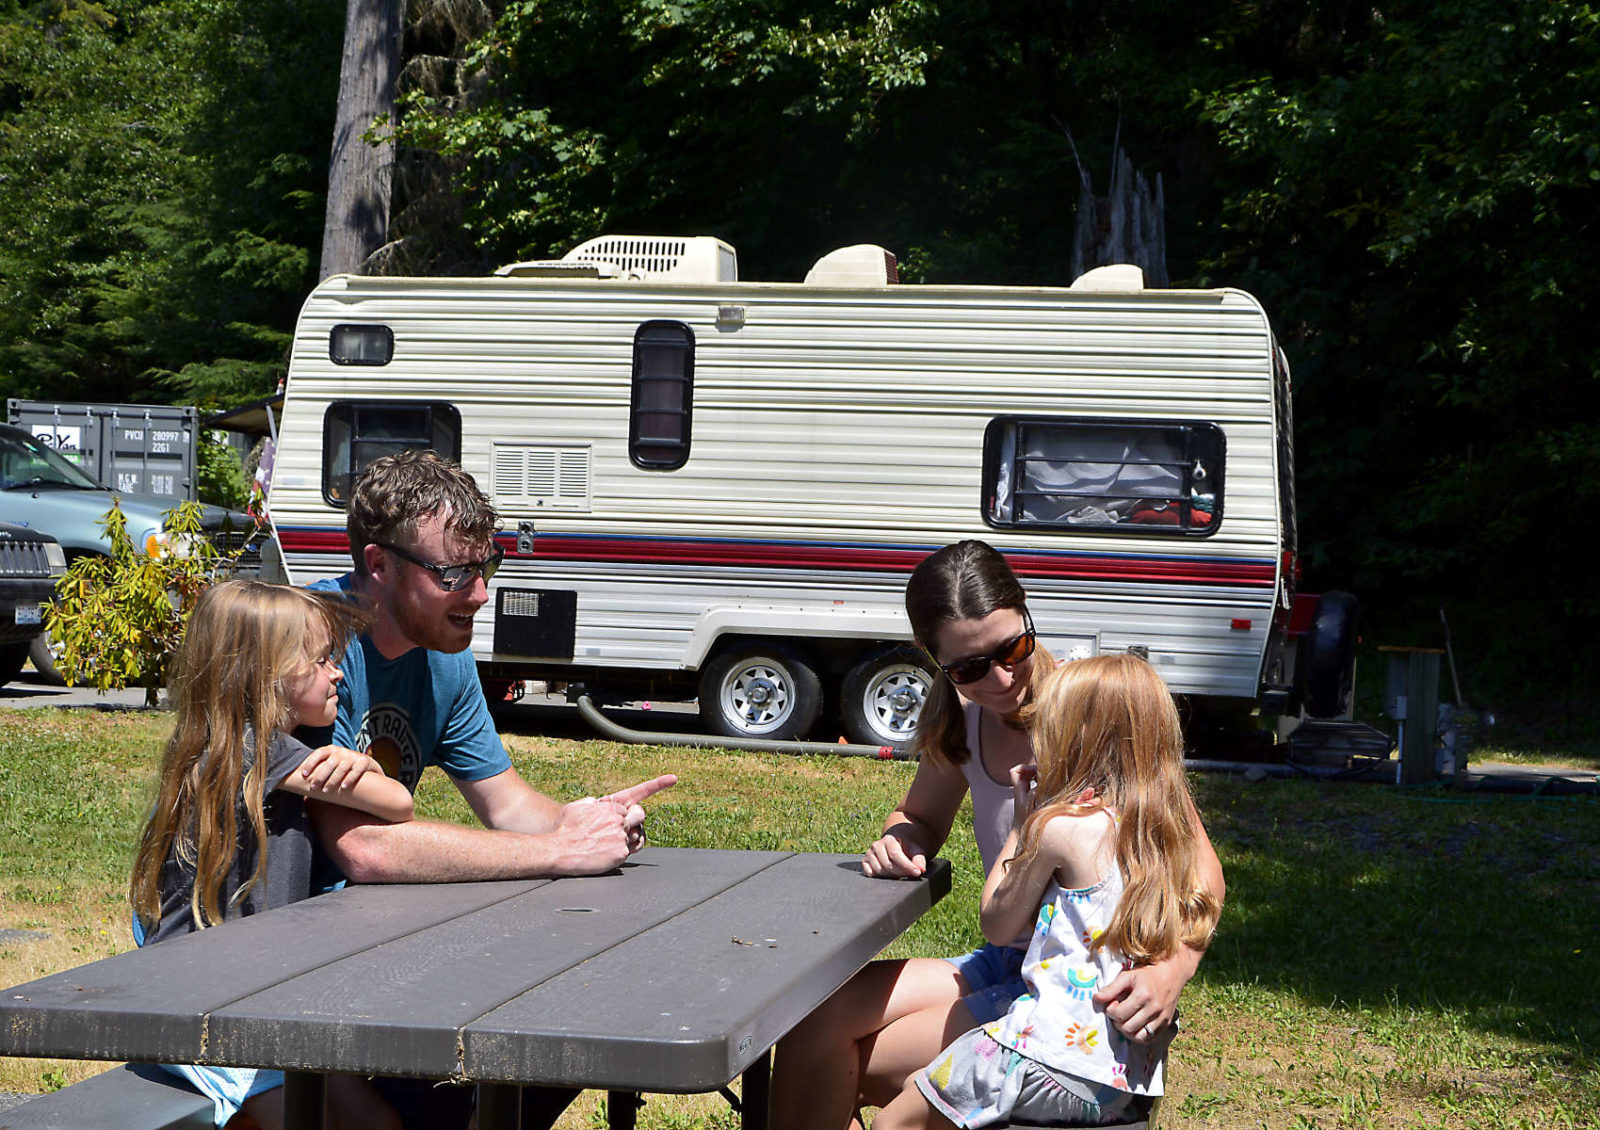 A family sits at a picnic table with an RV in the background